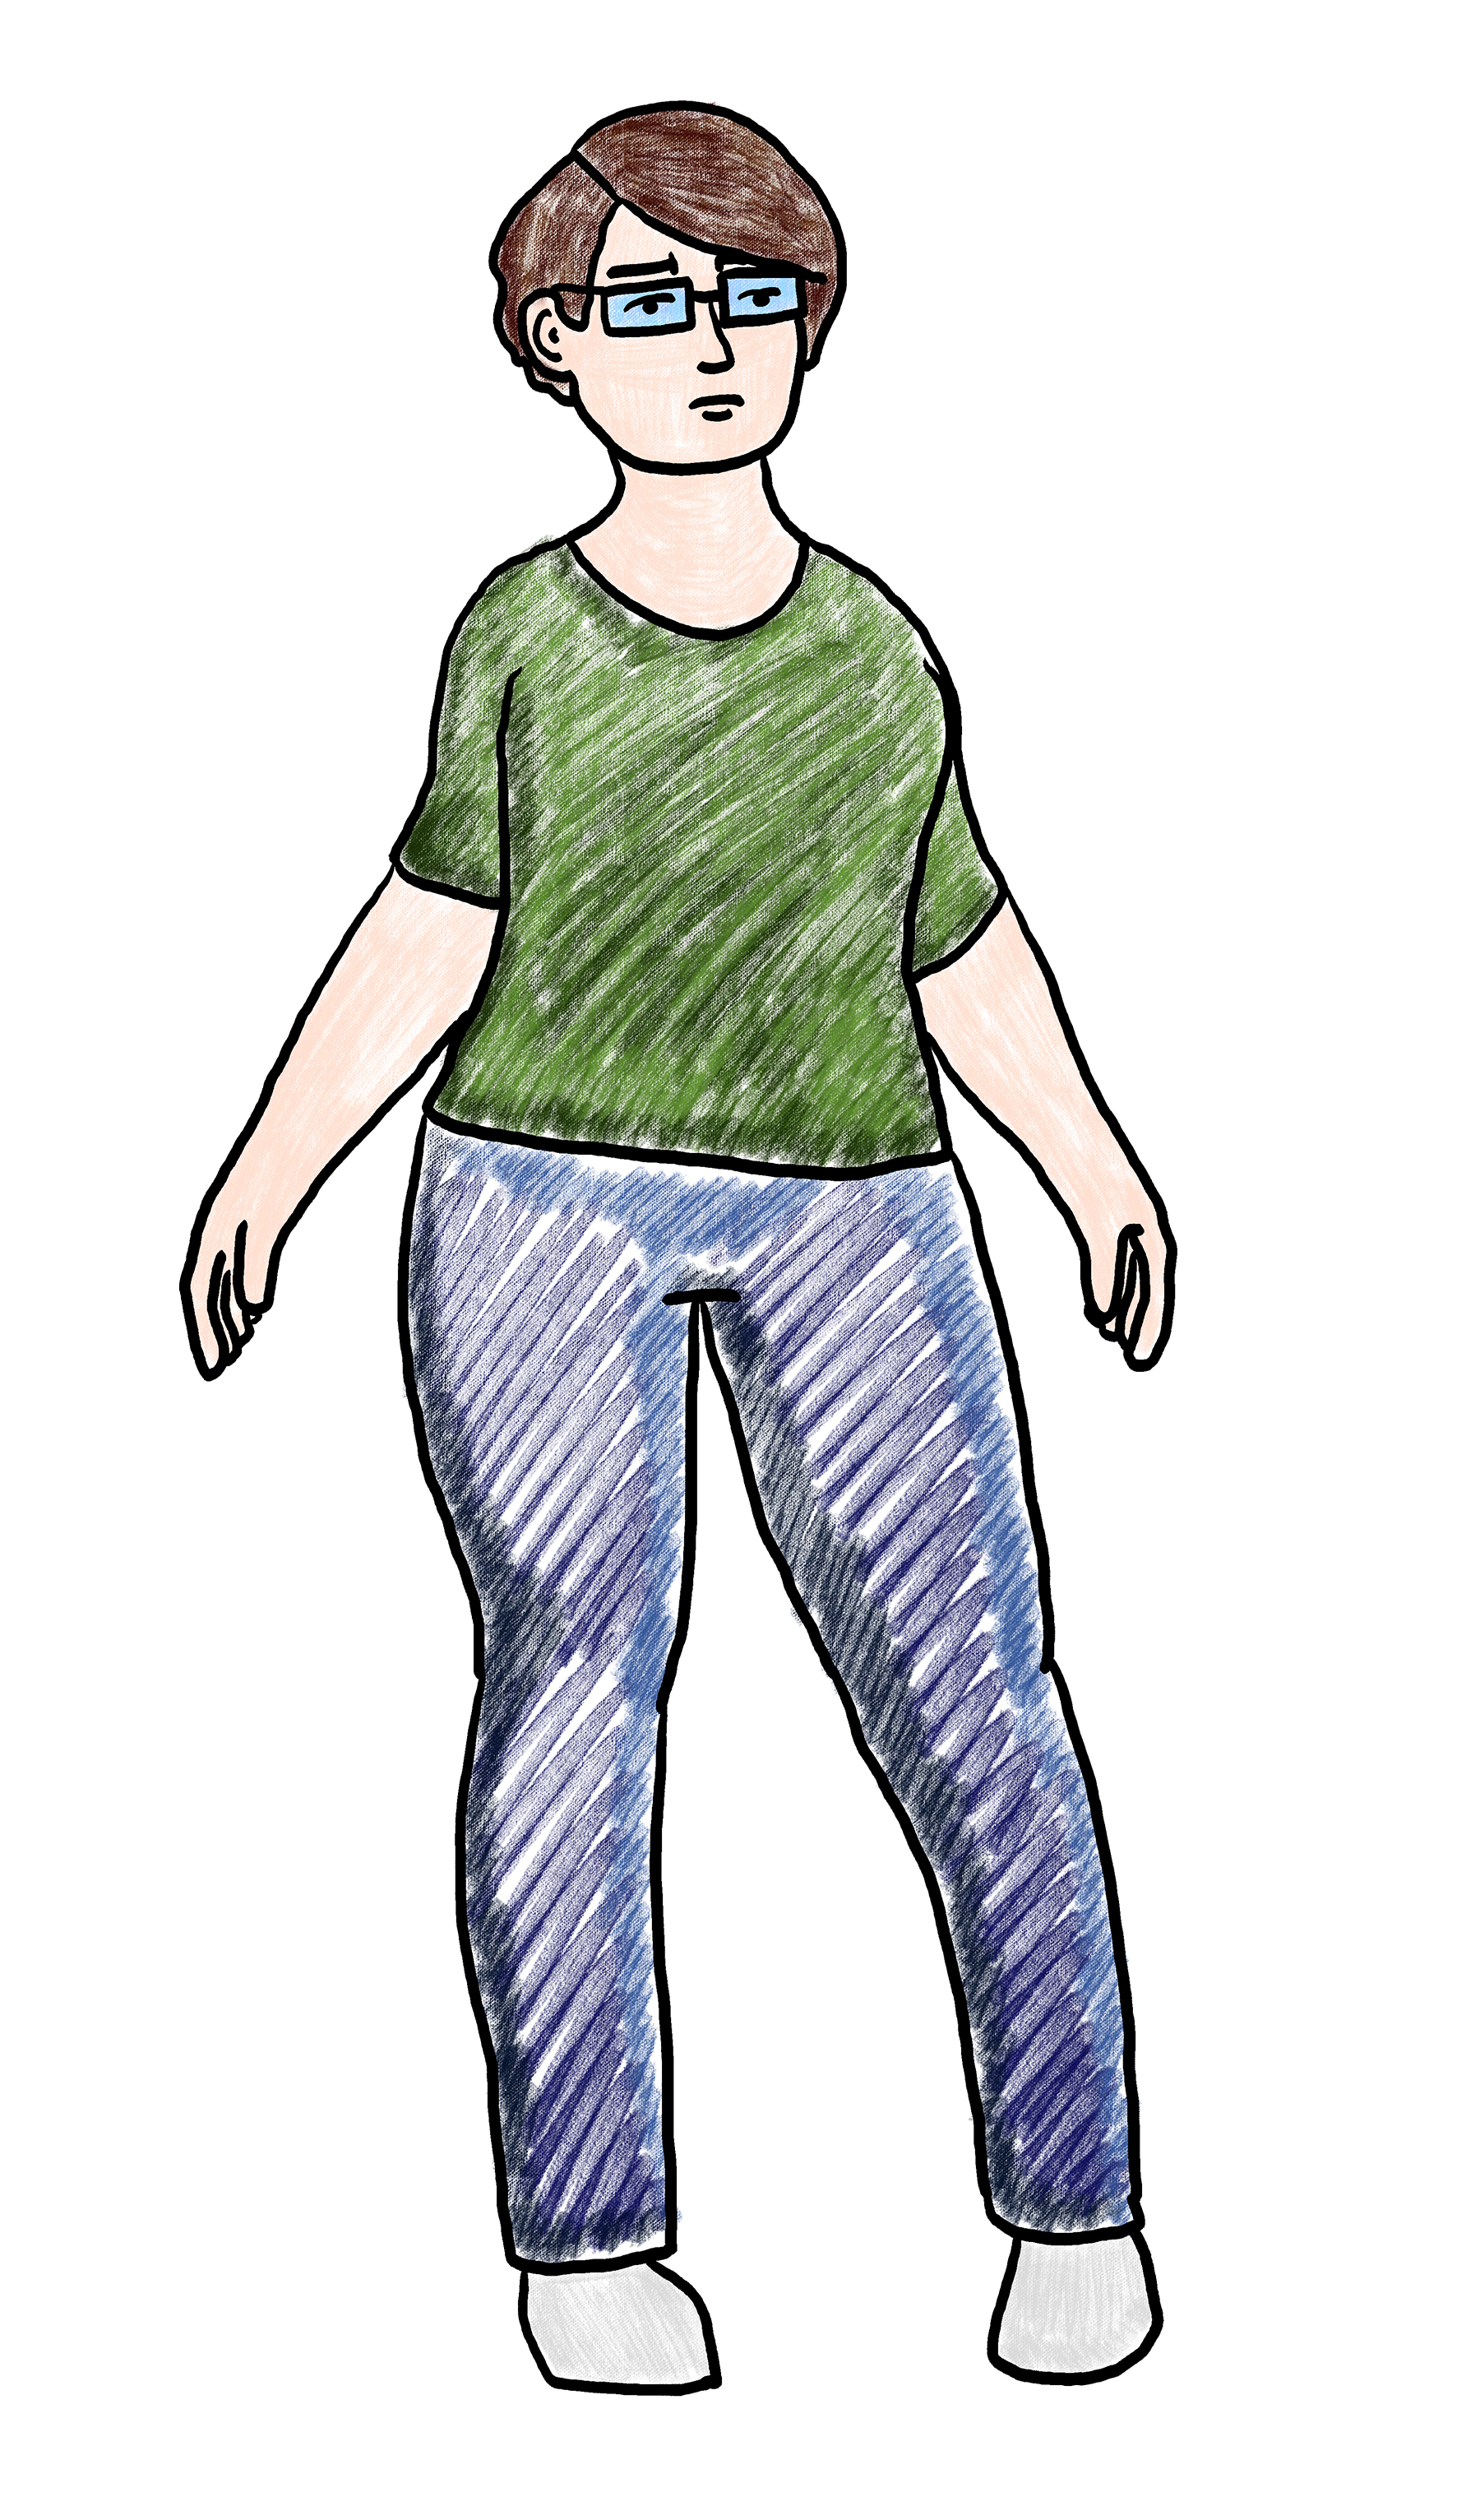 35 - just me--small.jpg